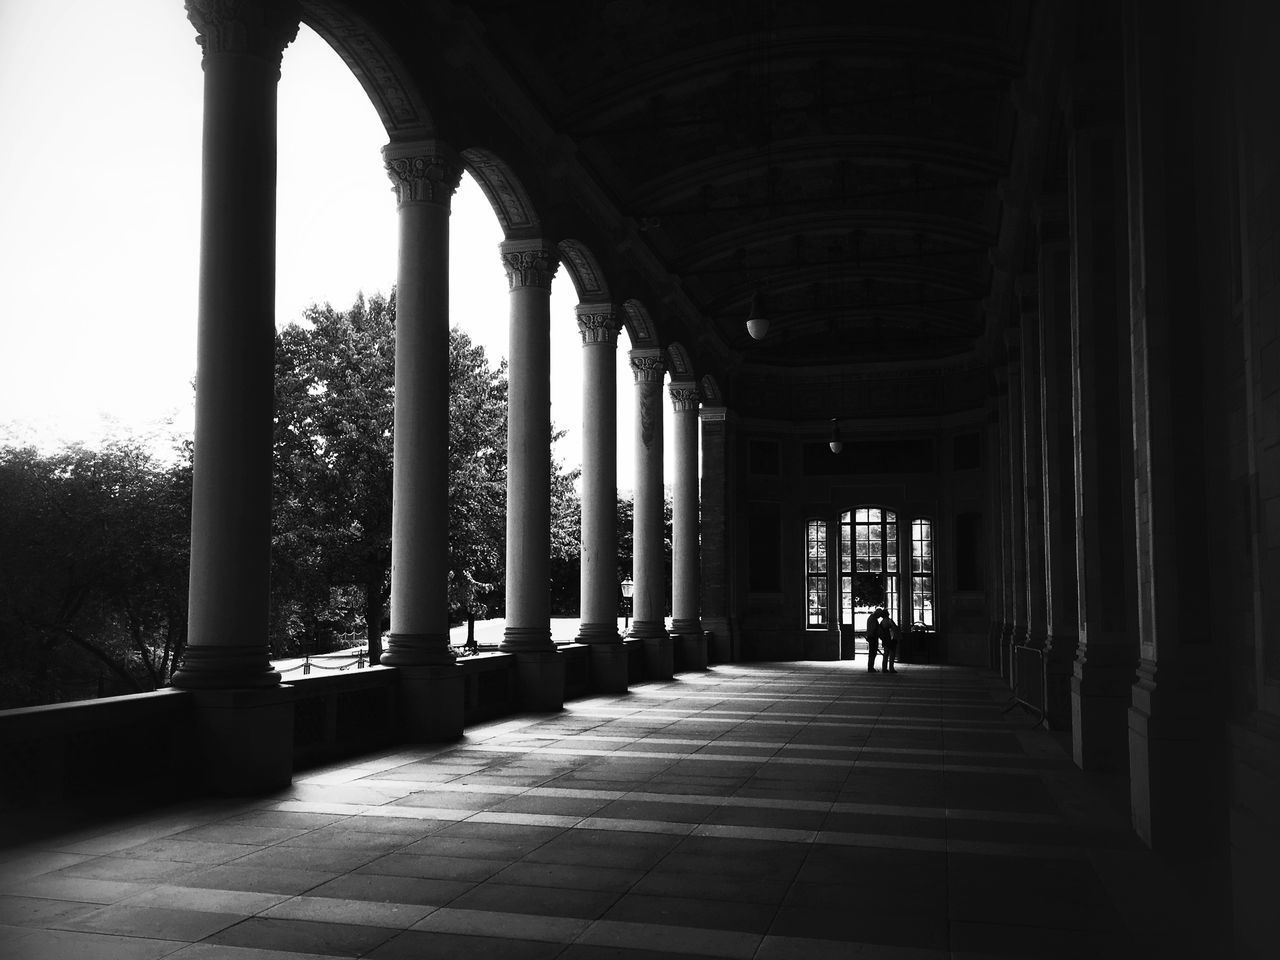 architectural column, the way forward, indoors, corridor, architecture, arch, day, pillar, built structure, no people